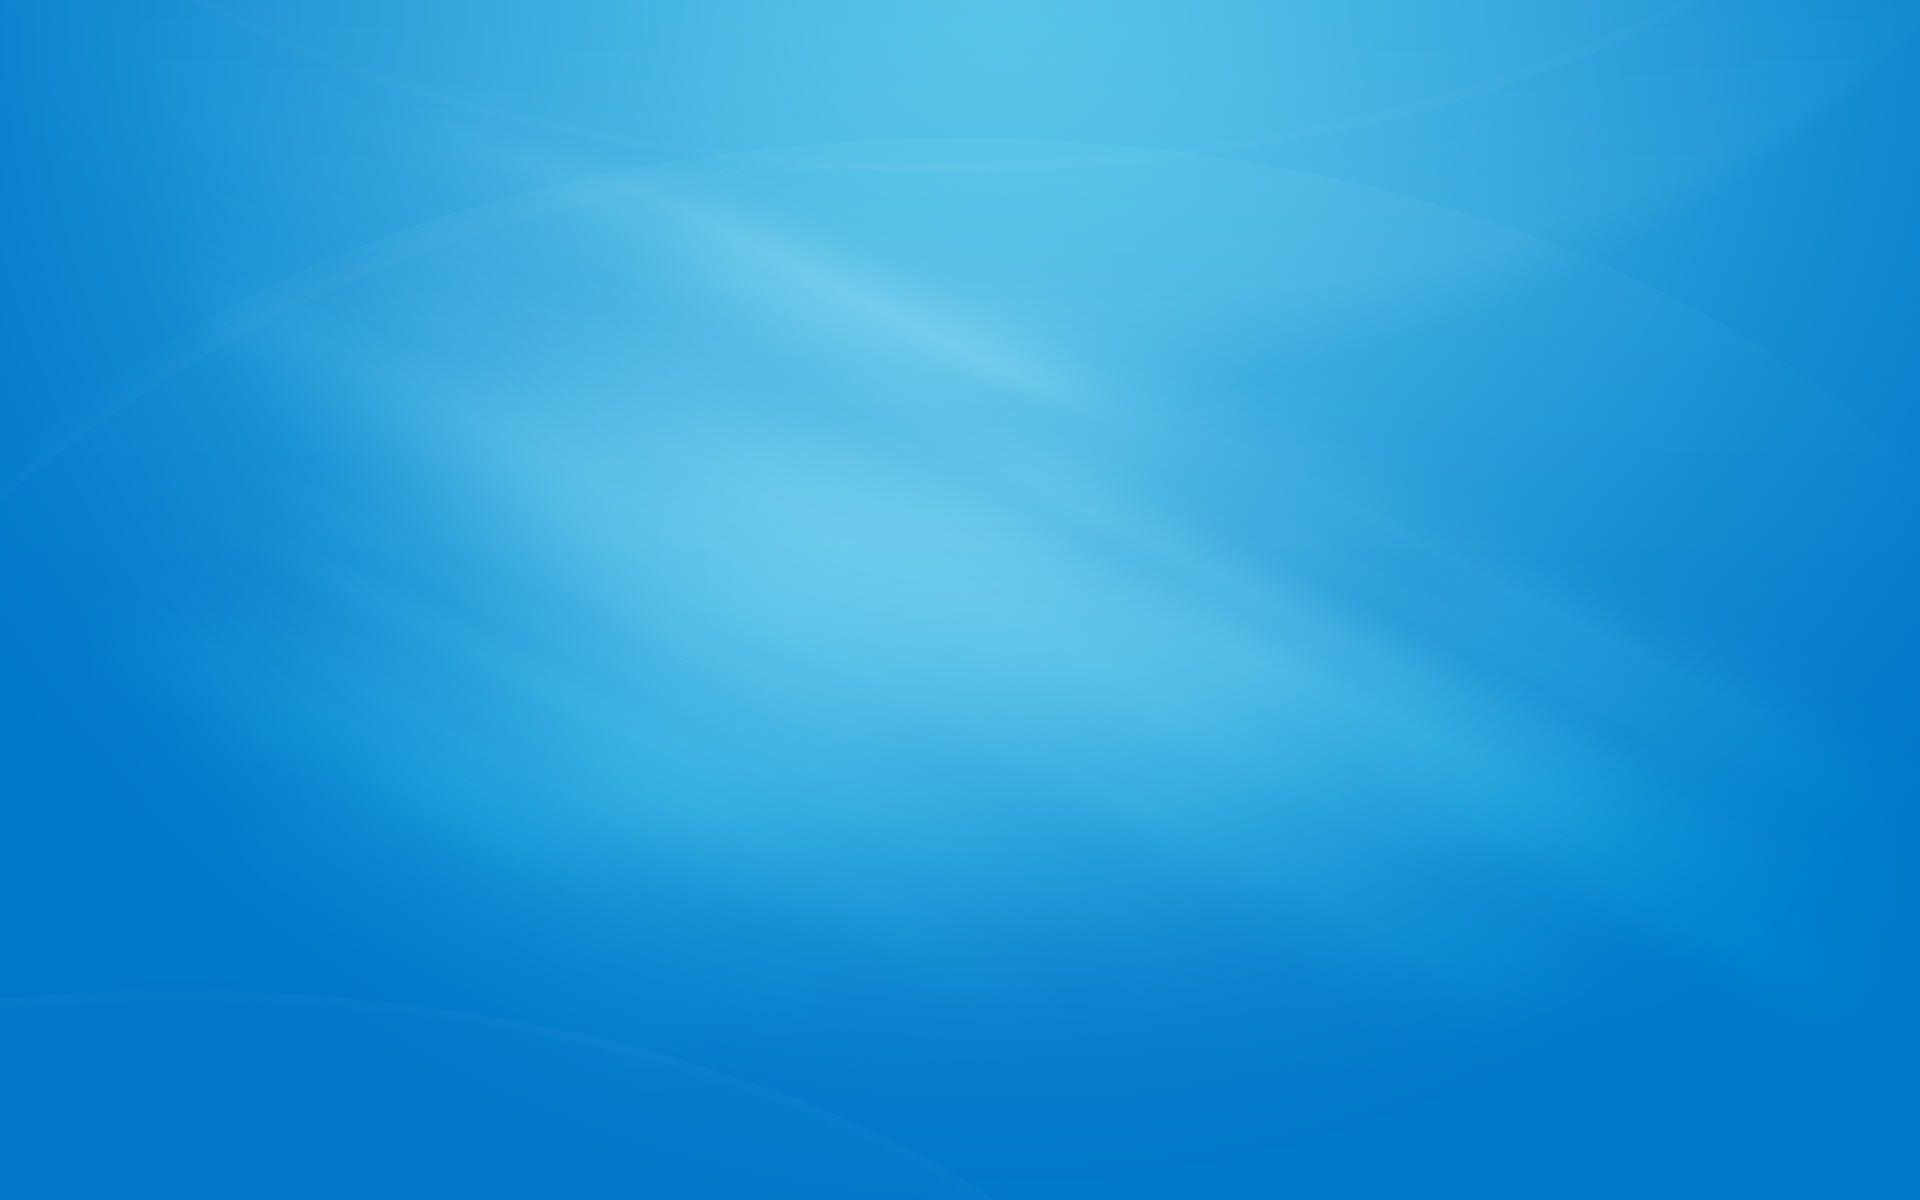 Blue Computer Wallpapers Top Free Blue Computer